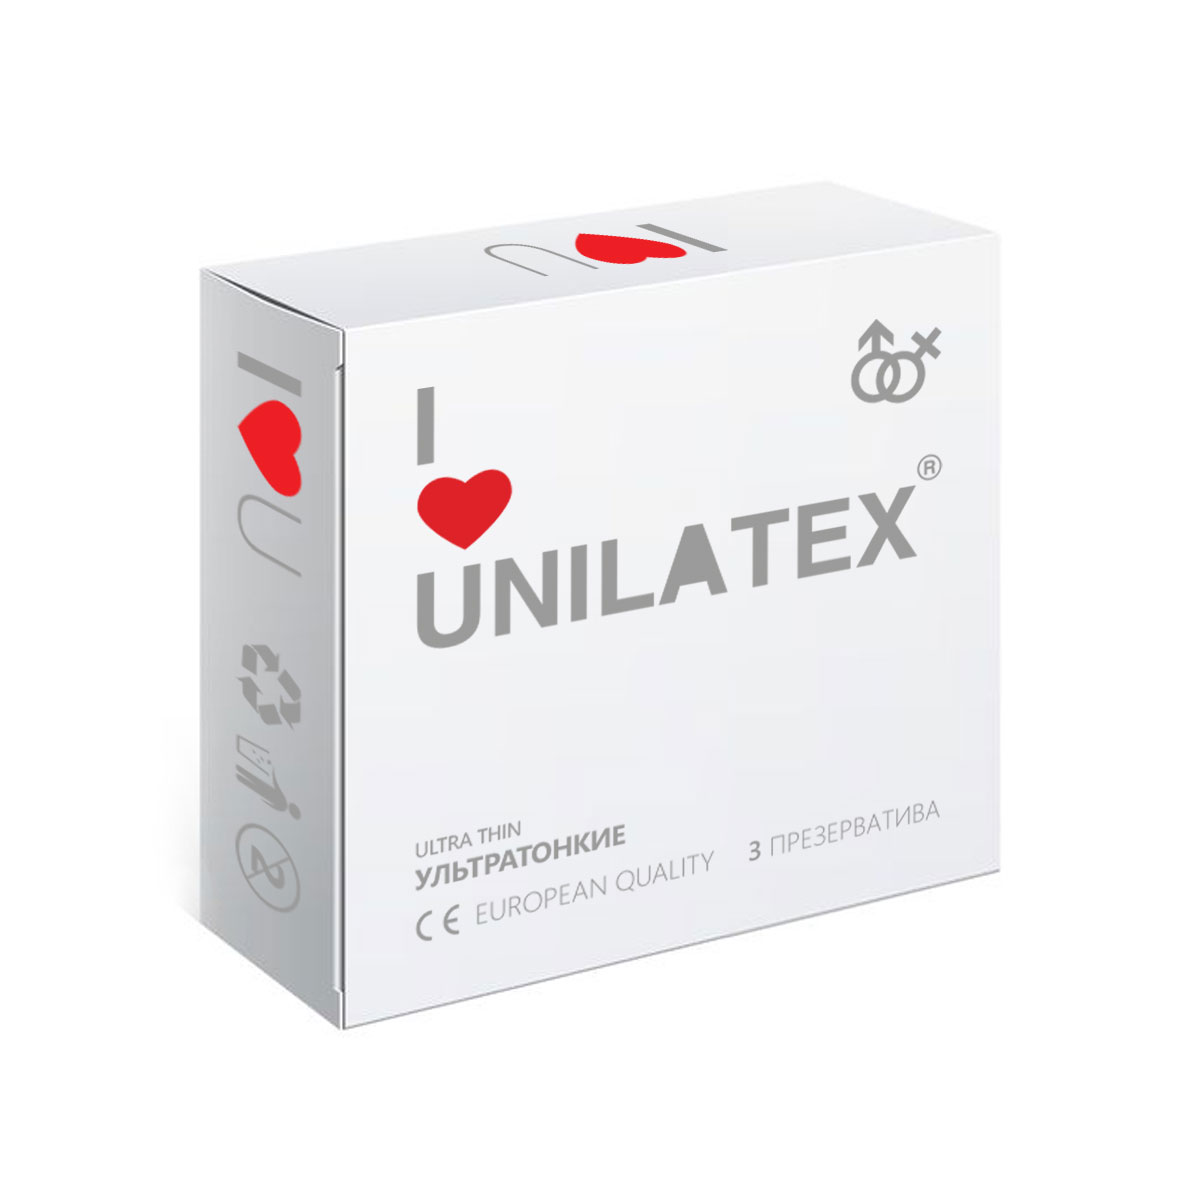 Презервативы Unilatex UltraThin, 3 шт unilatex gel